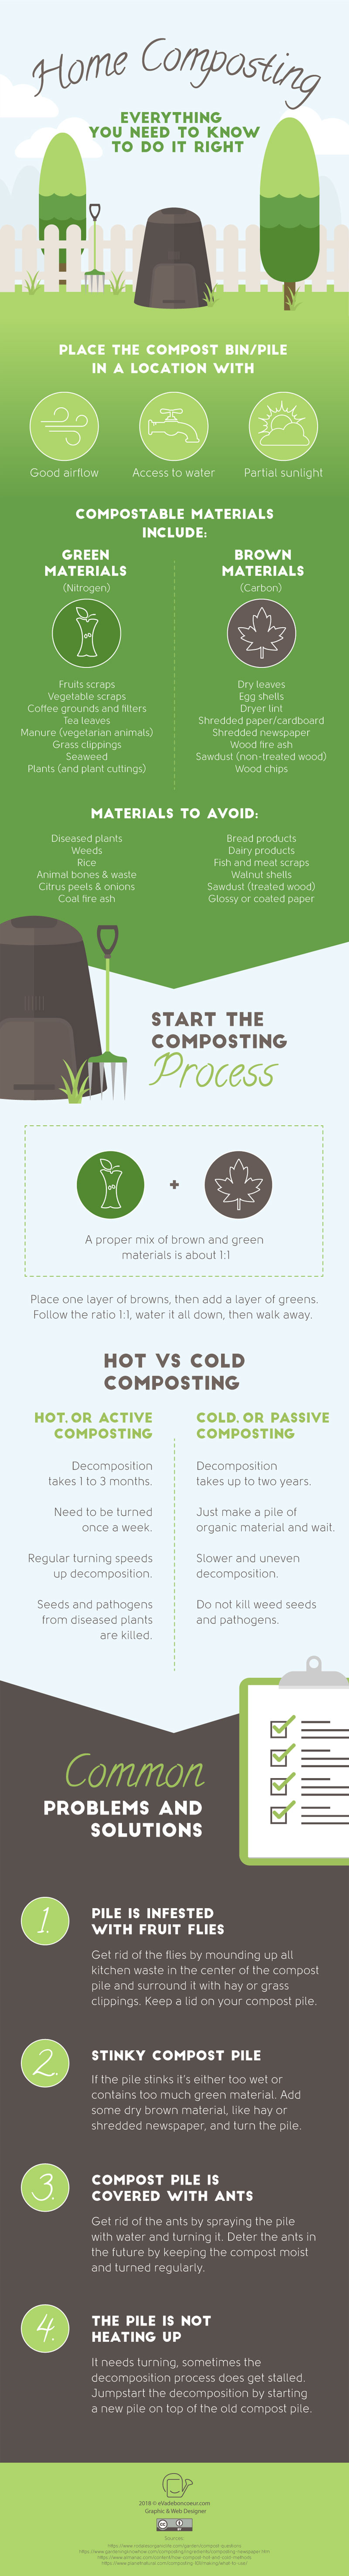 Home Composting: Everything You Need to Know to Do It Right